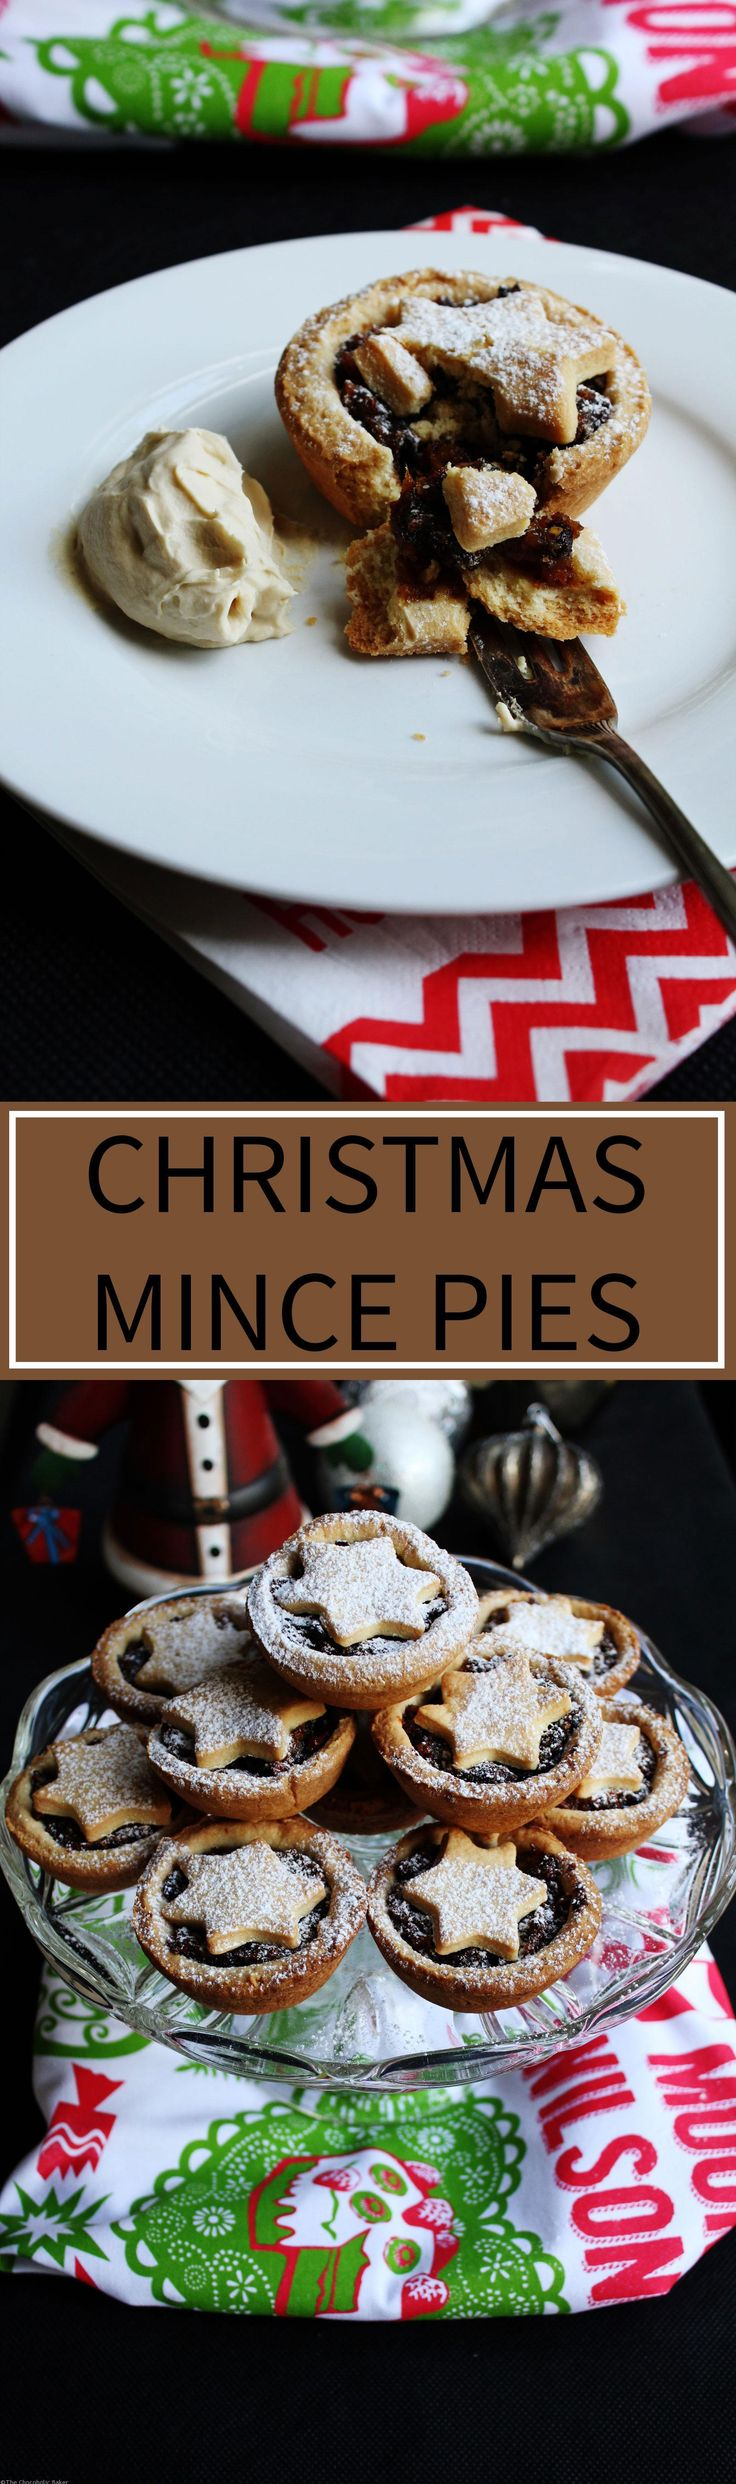 Christmas Mince Pies - Little fruit pies that are the embodiment of Christmas, filled with spiced fruit mince and encased in a sweet shortcrust pastry.